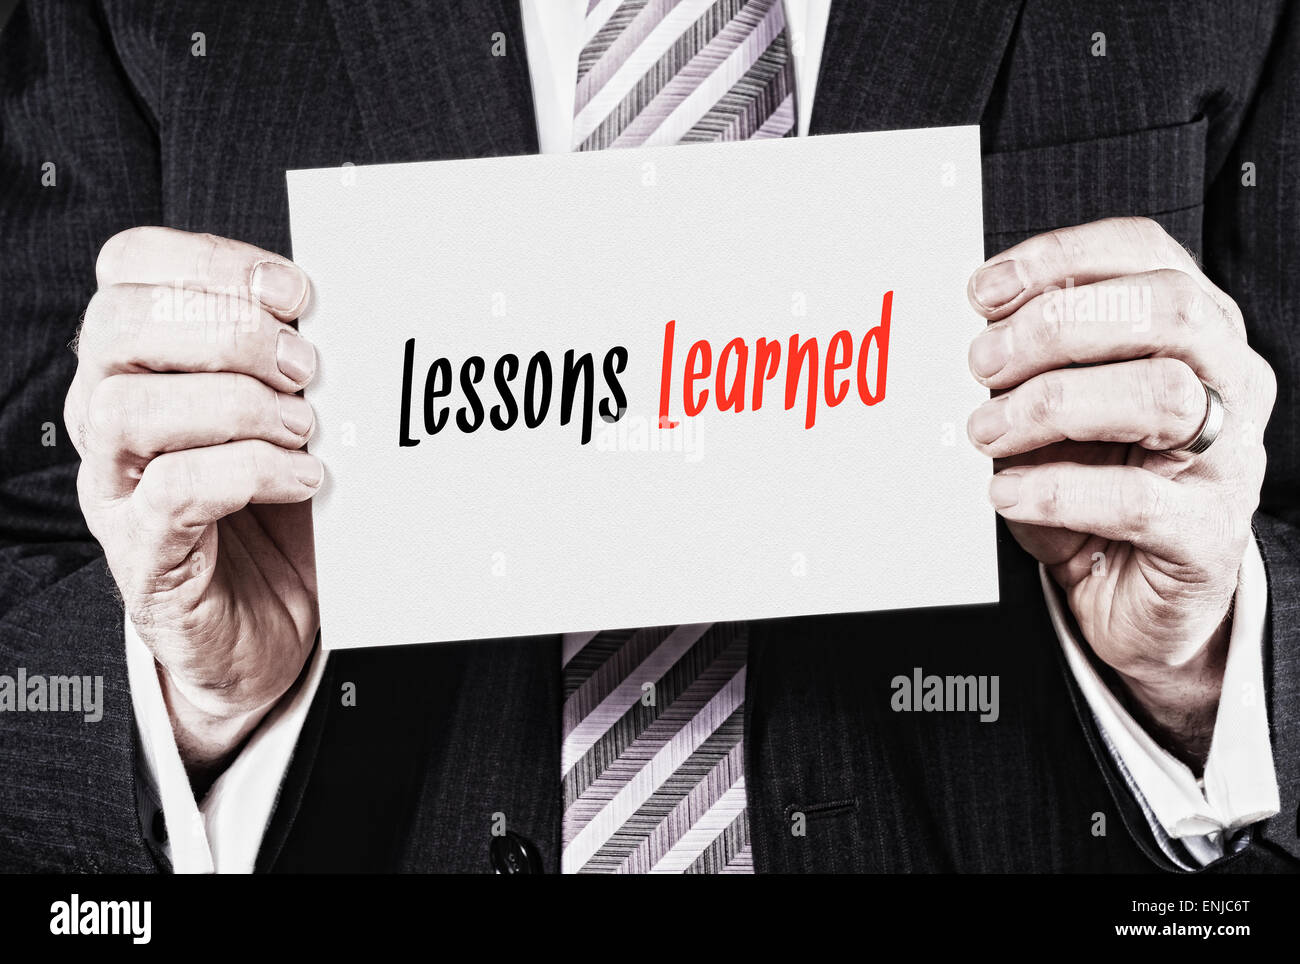 A businessman holding a business card with the words,  Lessons Learned, written on it. - Stock Image